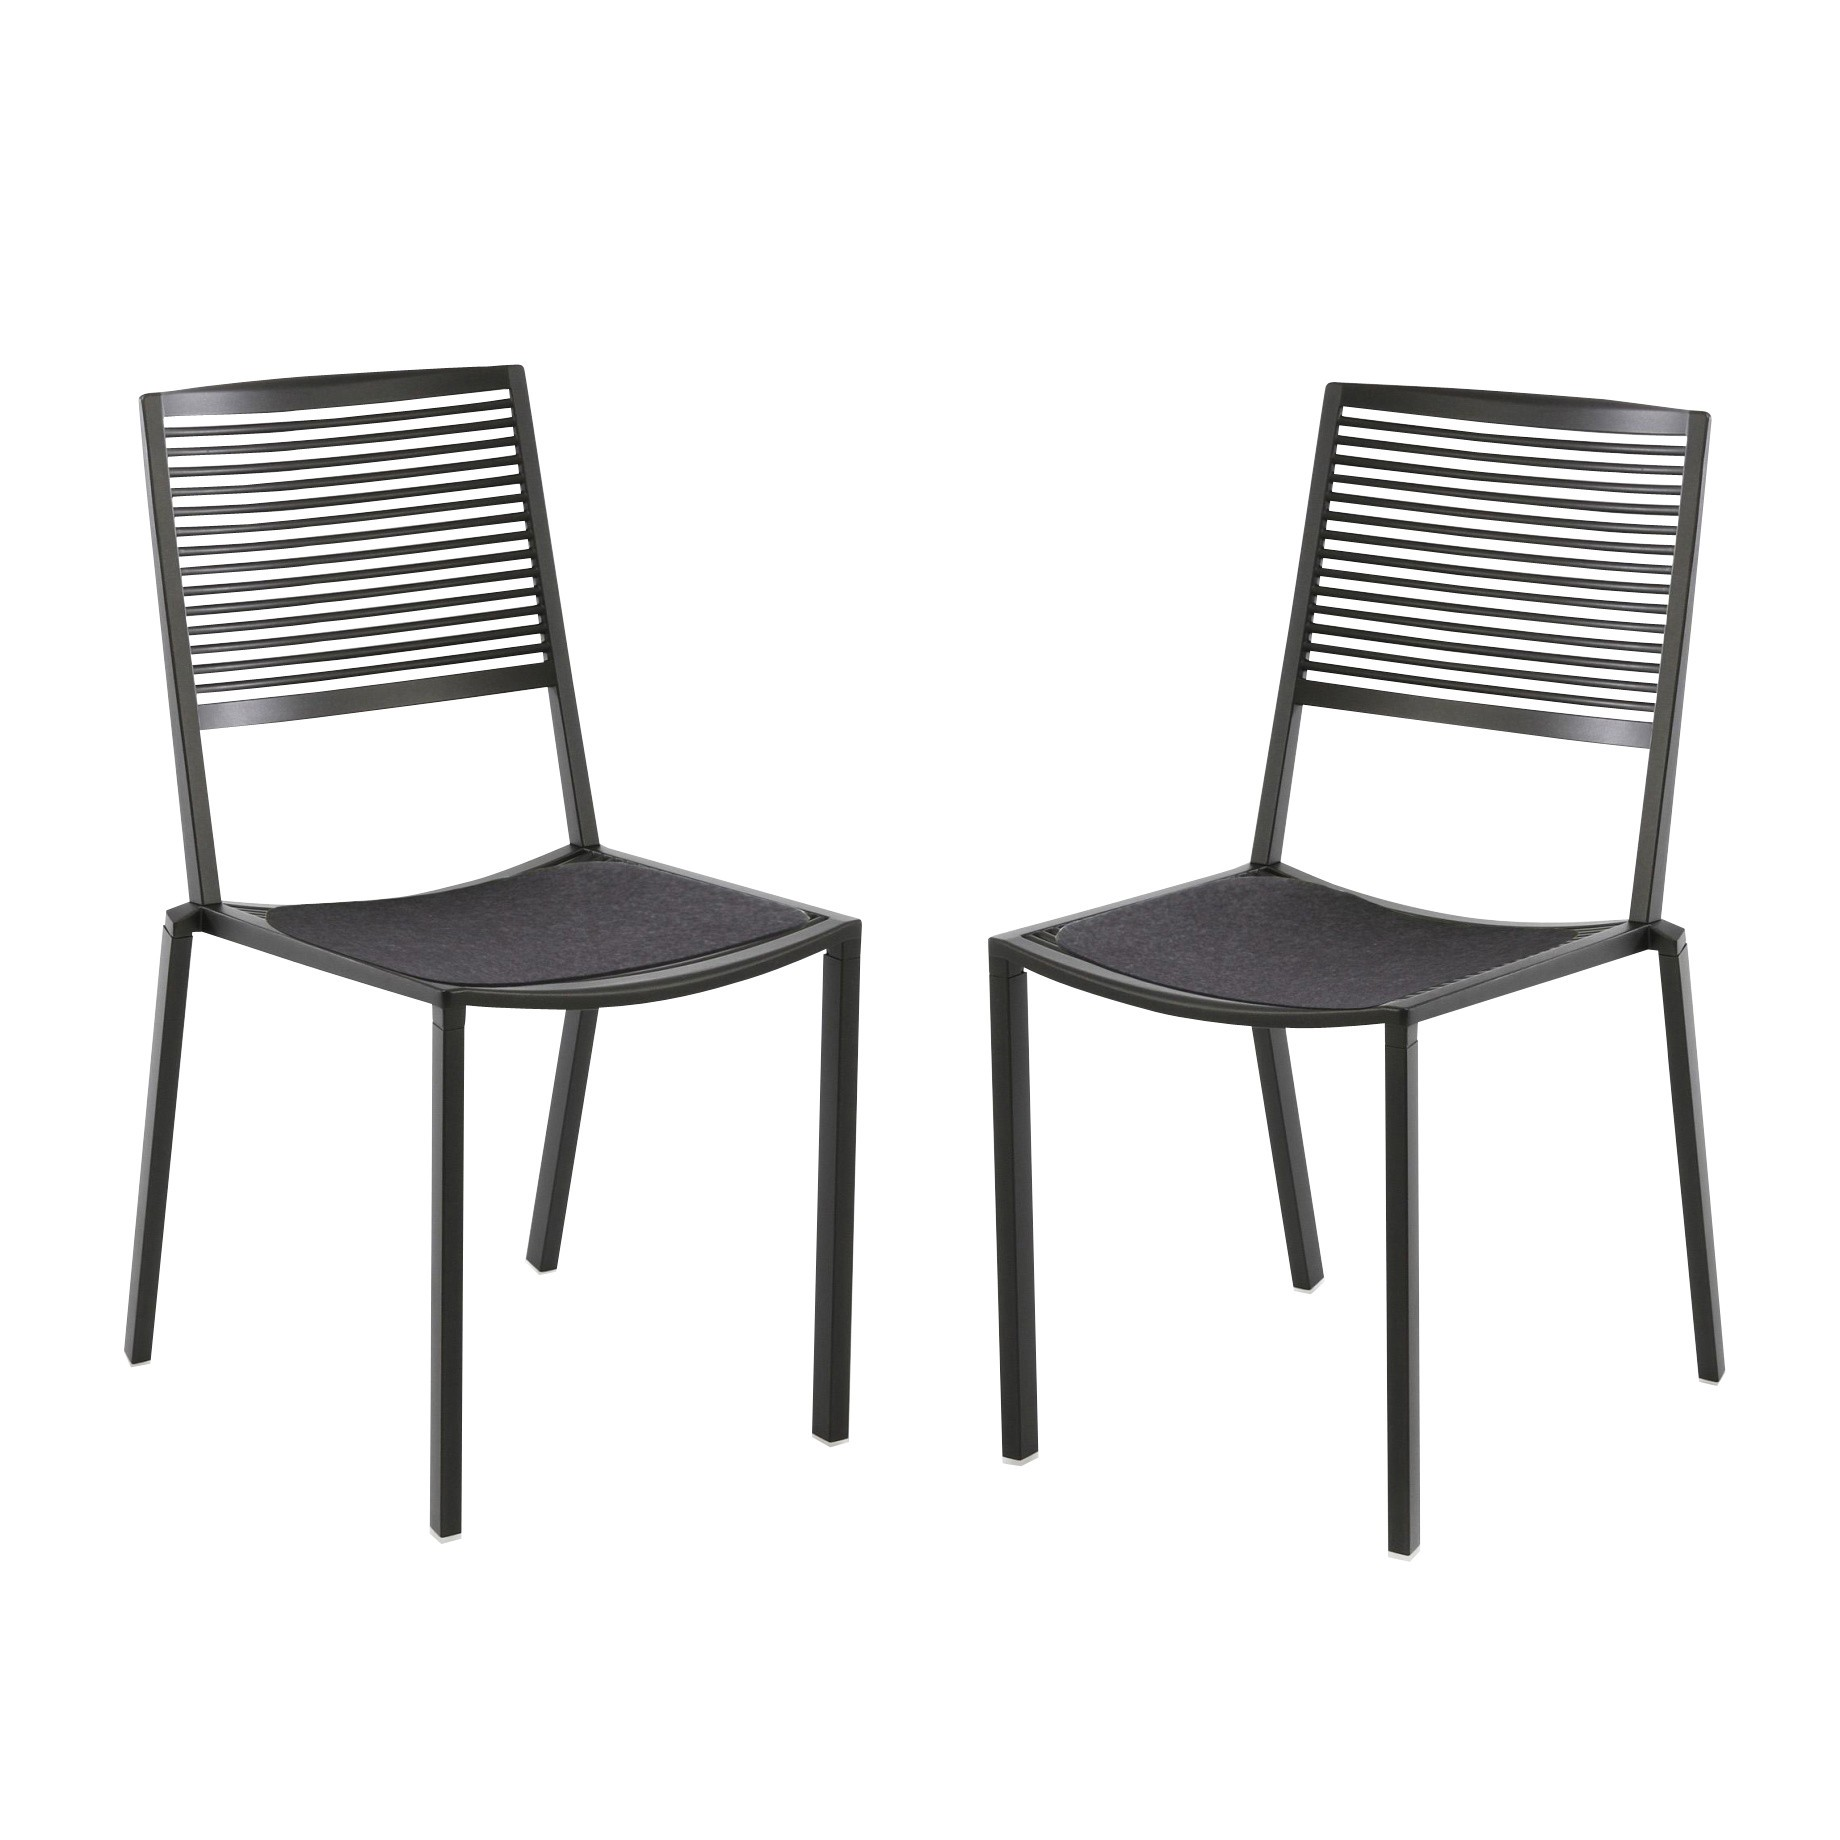 Outdoor Chair Set Easy Outdoor Chair Set